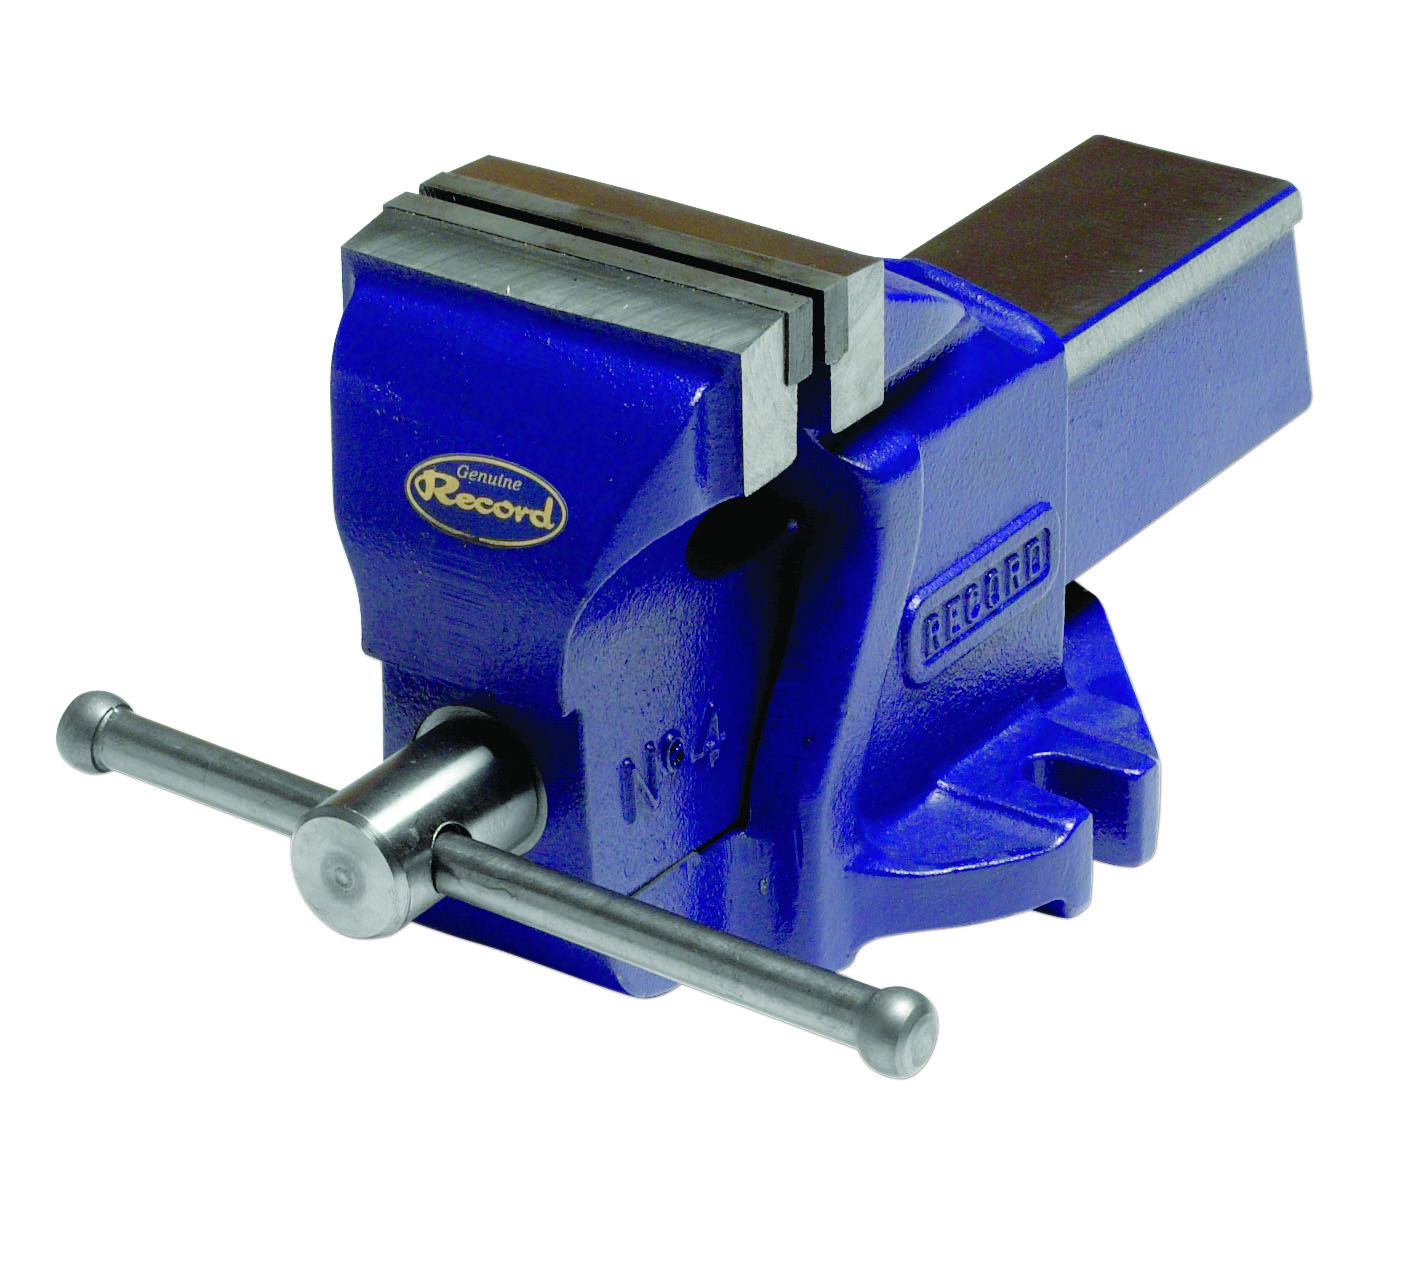 IRWIN T8ZR - Heavy Duty Mechanics Vice 8-inch